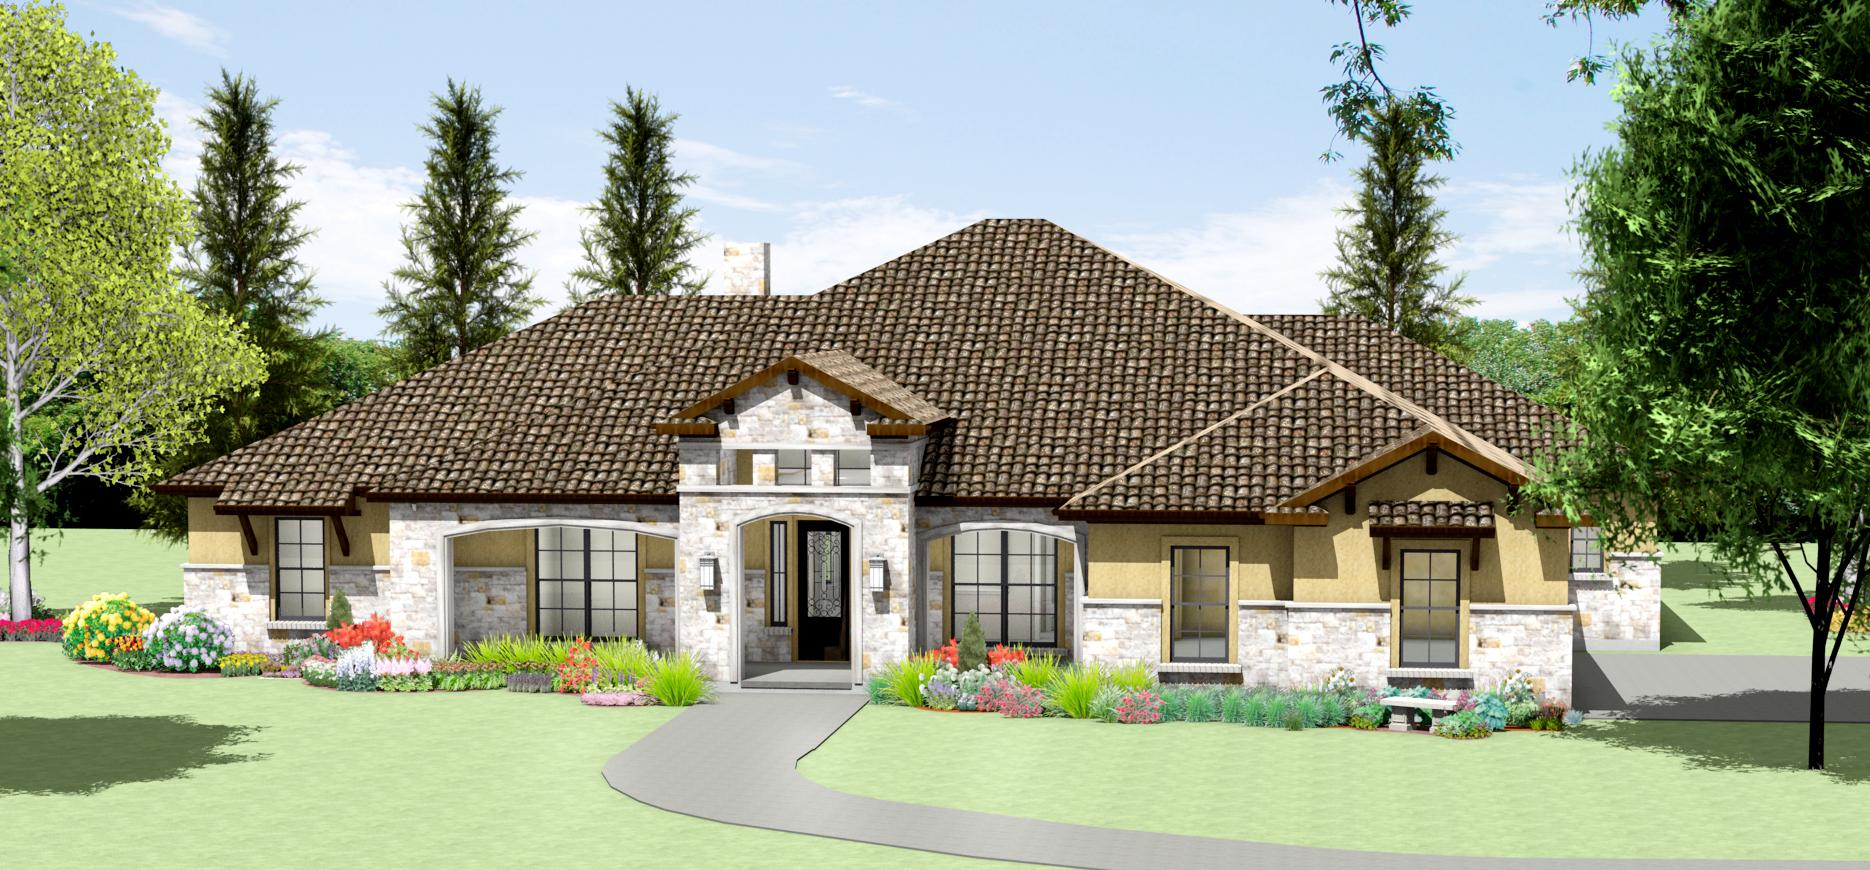 S3450r texas tuscan design texas house plans over 700 for Texas house designs